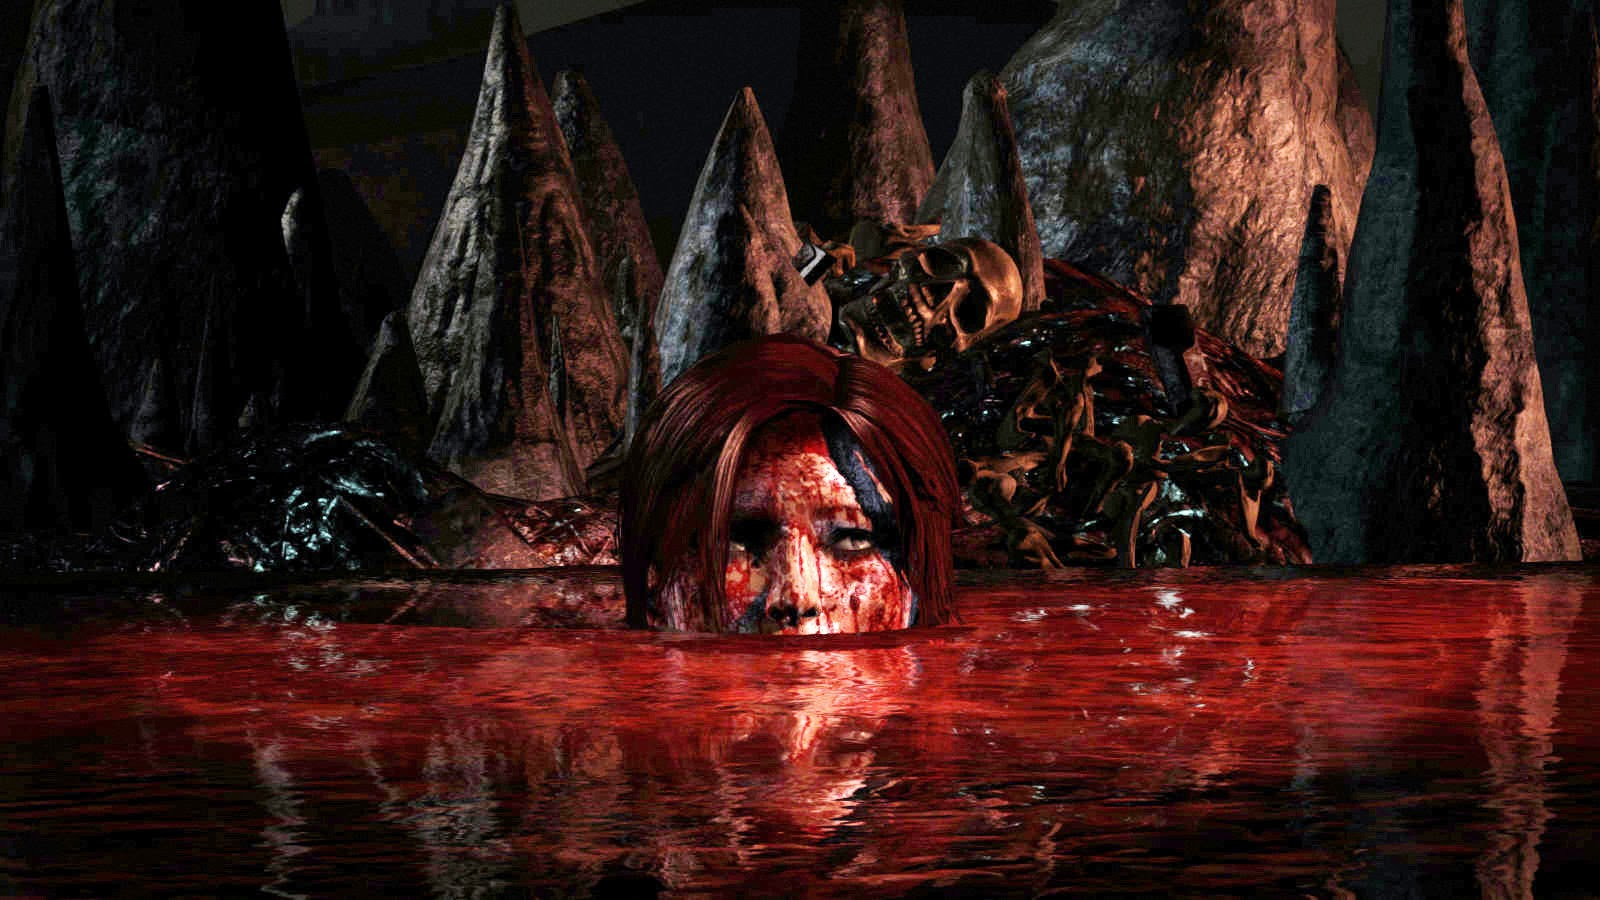 Yes This Is A Lake Of Blood And Rotting Human Flesh Alas The Game Does Not Contain Soap